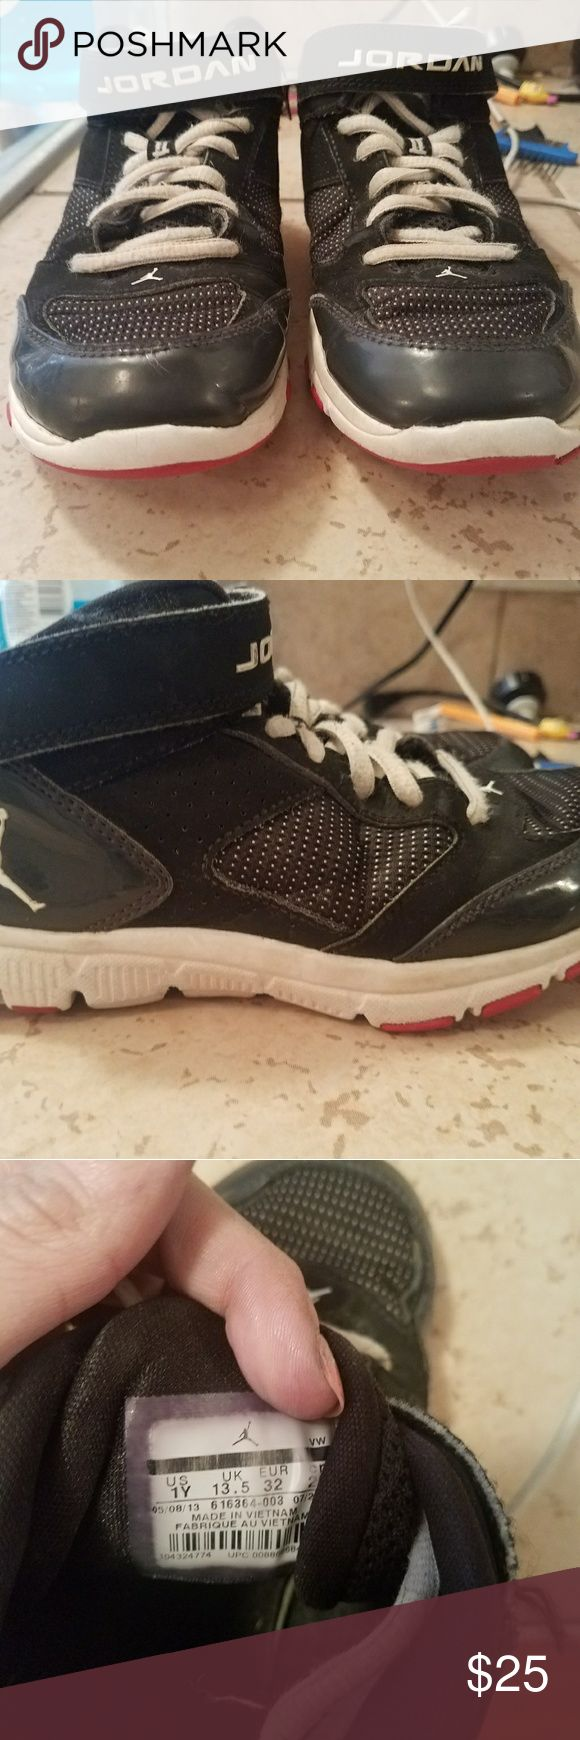 Kids Jordans size 1y Kids Jordan shoes size 1y black they have been used may need some new laces they are in good condition jordans Shoes Sneakers